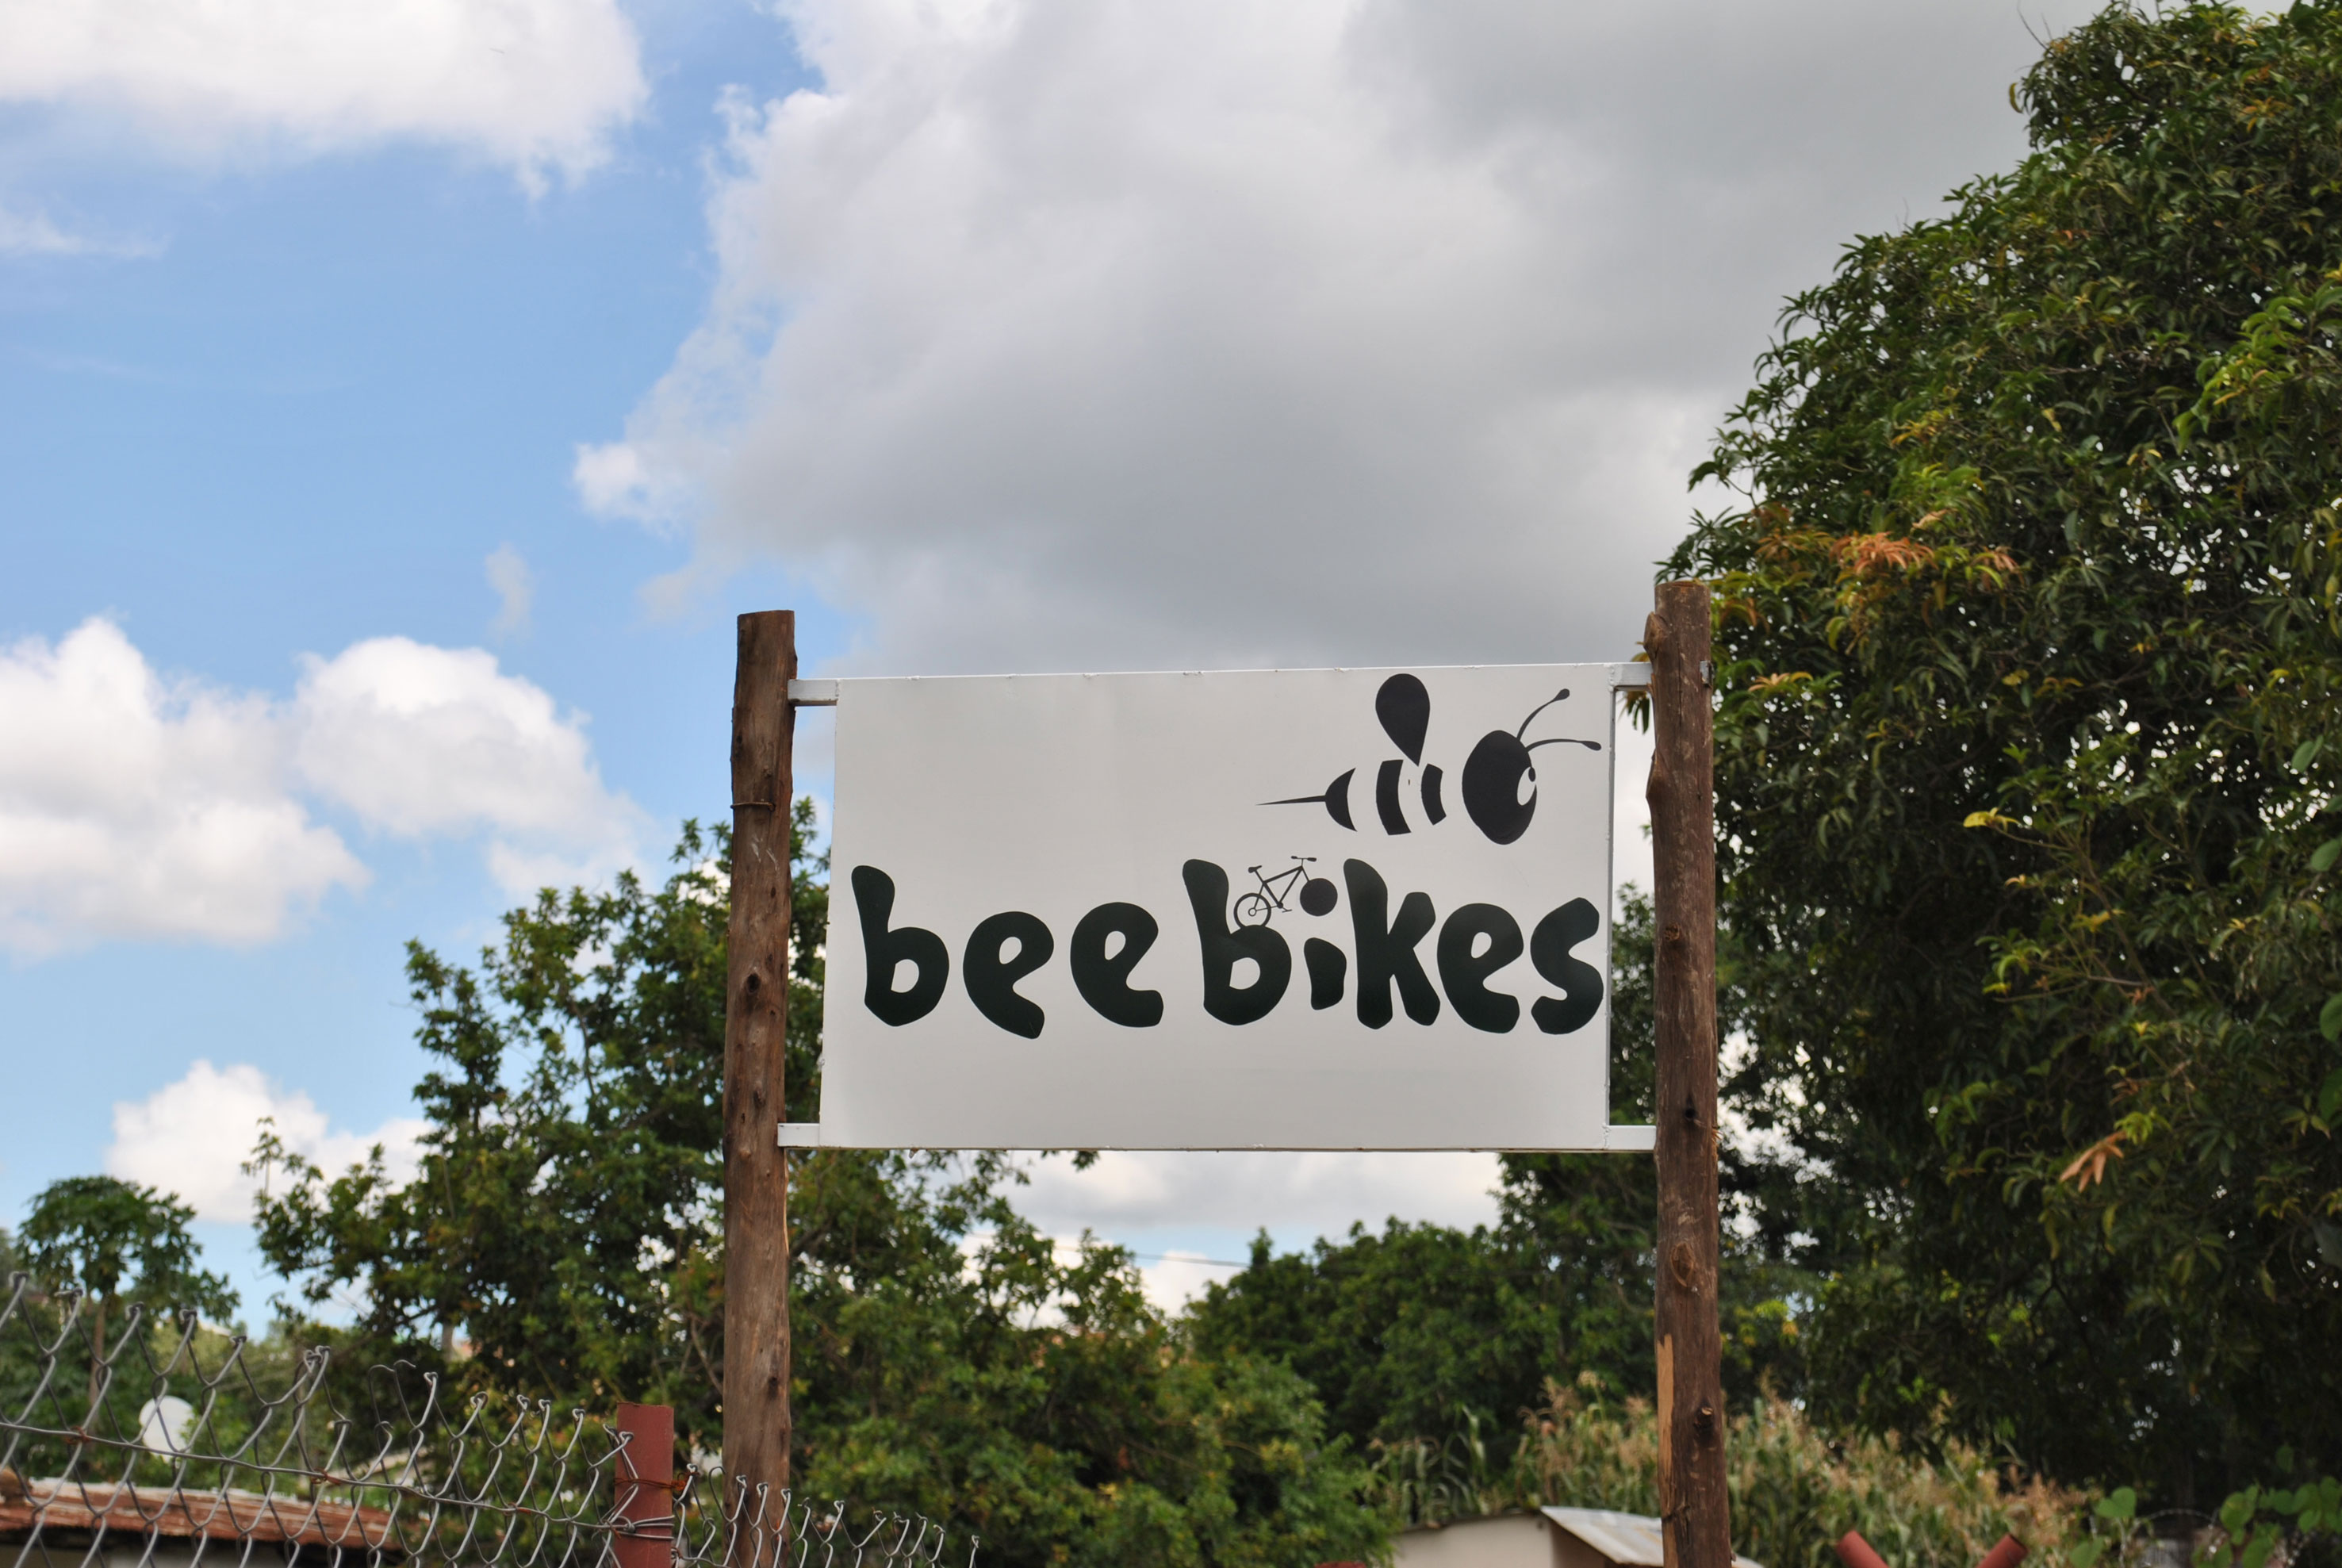 2013 The all new improved BeeBikes